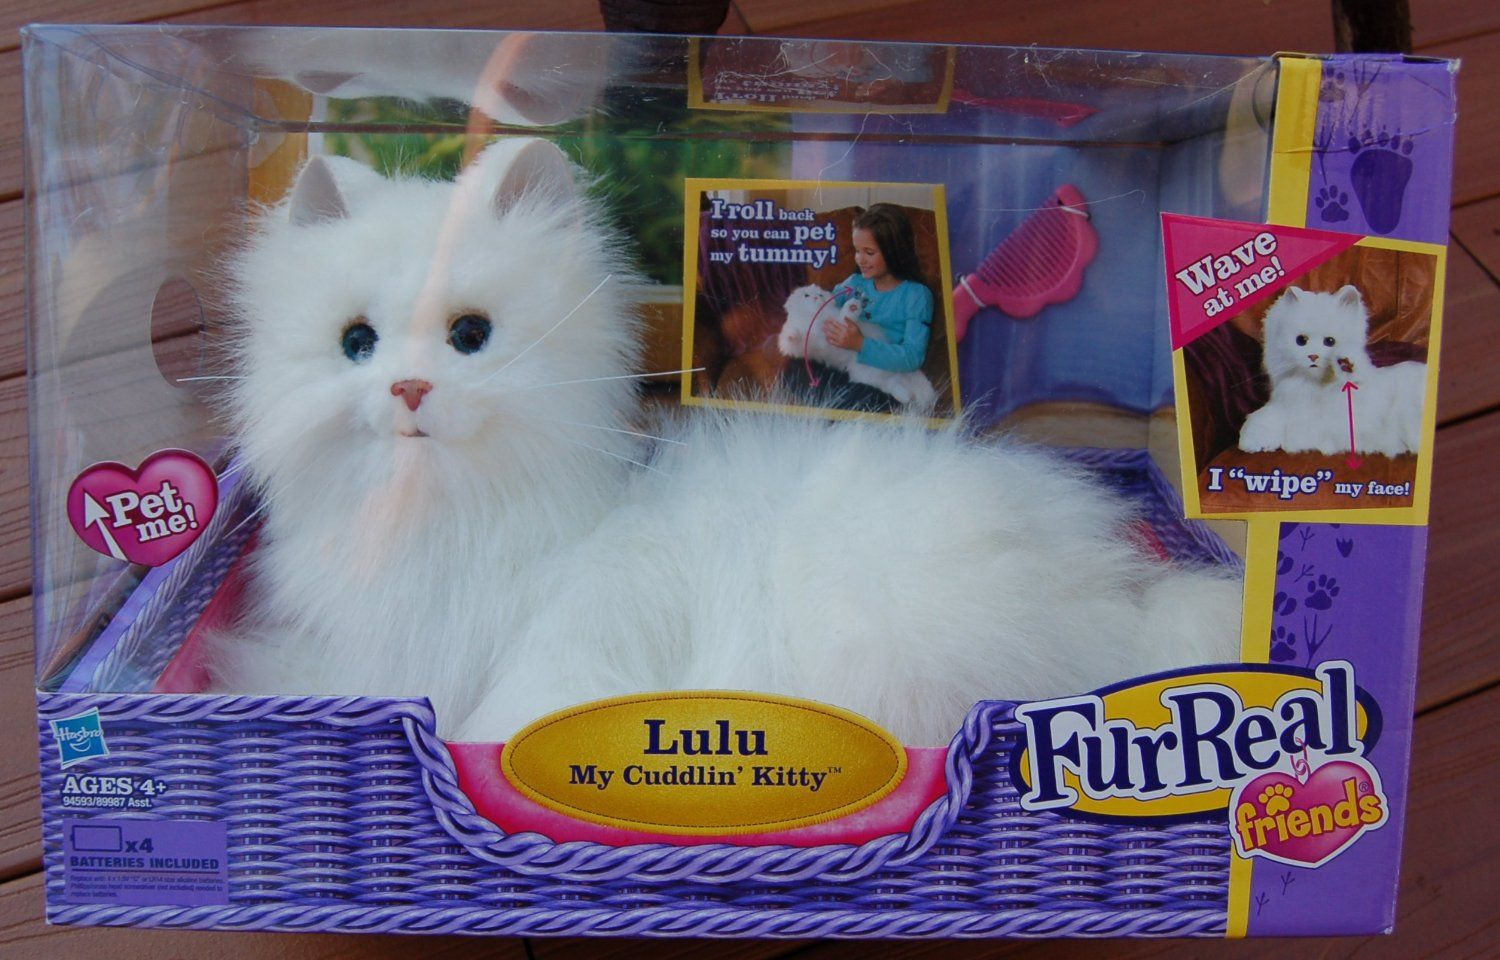 Furreal Friends Lulu My Cuddlin Kitty White Fluffy Cat Moves And Makes Realistic Cat Sounds In Response To Your Fur Real Friends Little Live Pets Kitten Toys